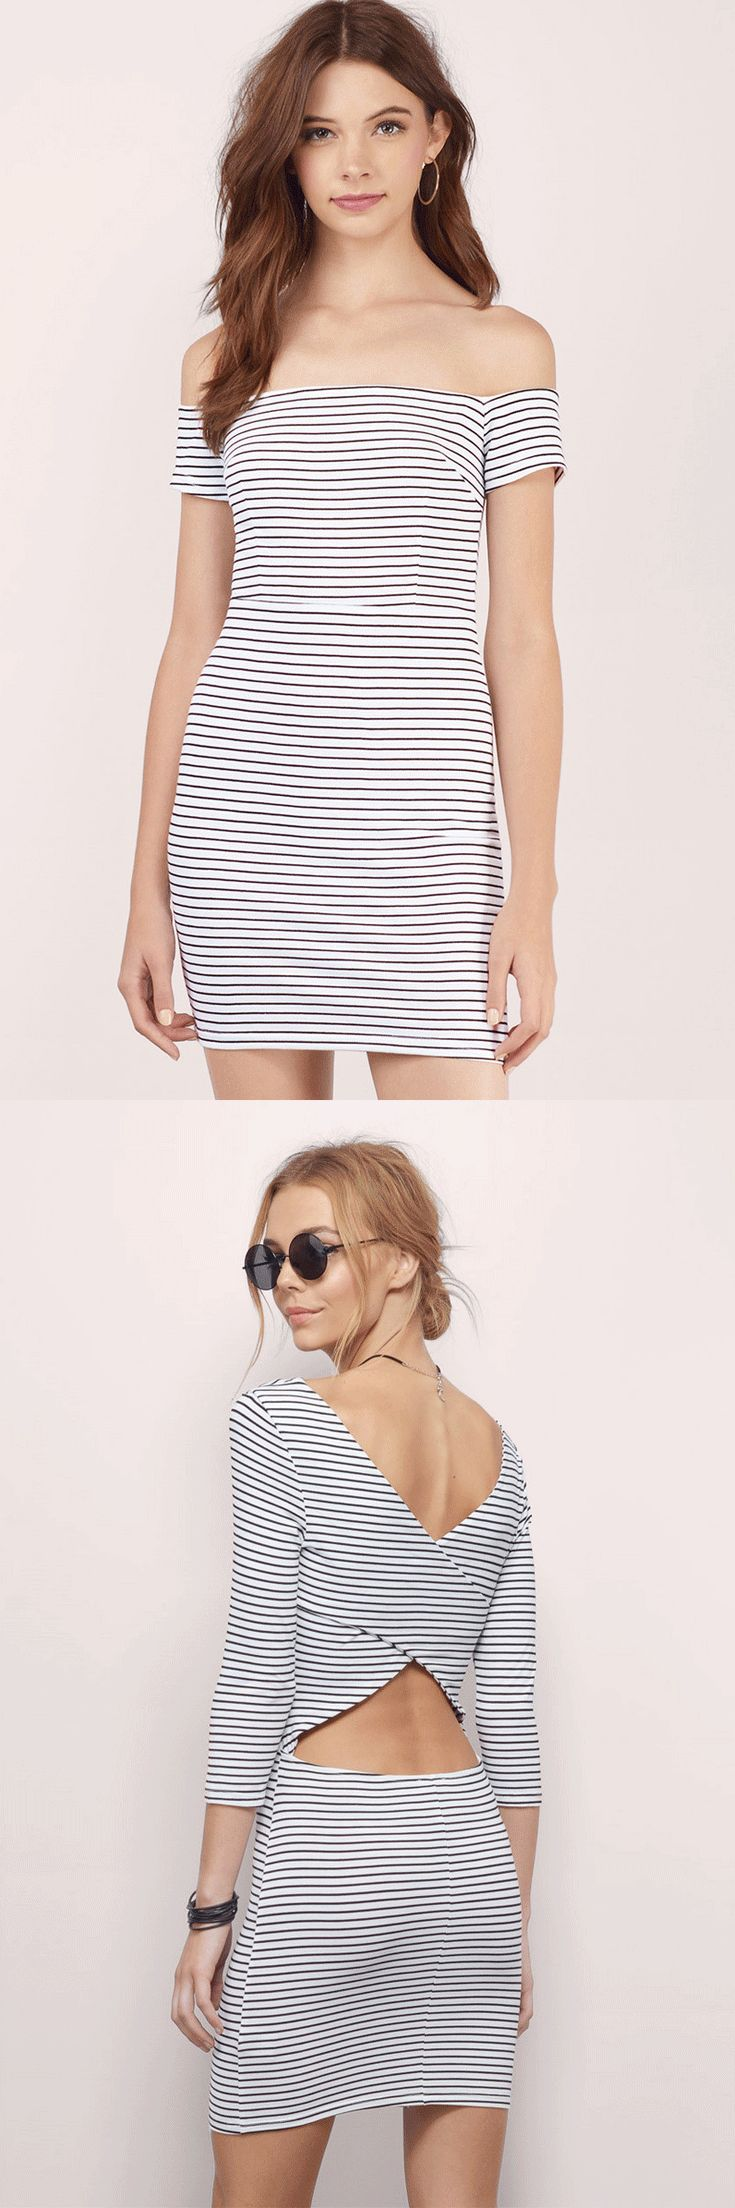 Striped Bodycon Dresses | Shop our huge selection of striped bodycons. Enjoy 50% off your first order and free shipping over $50.